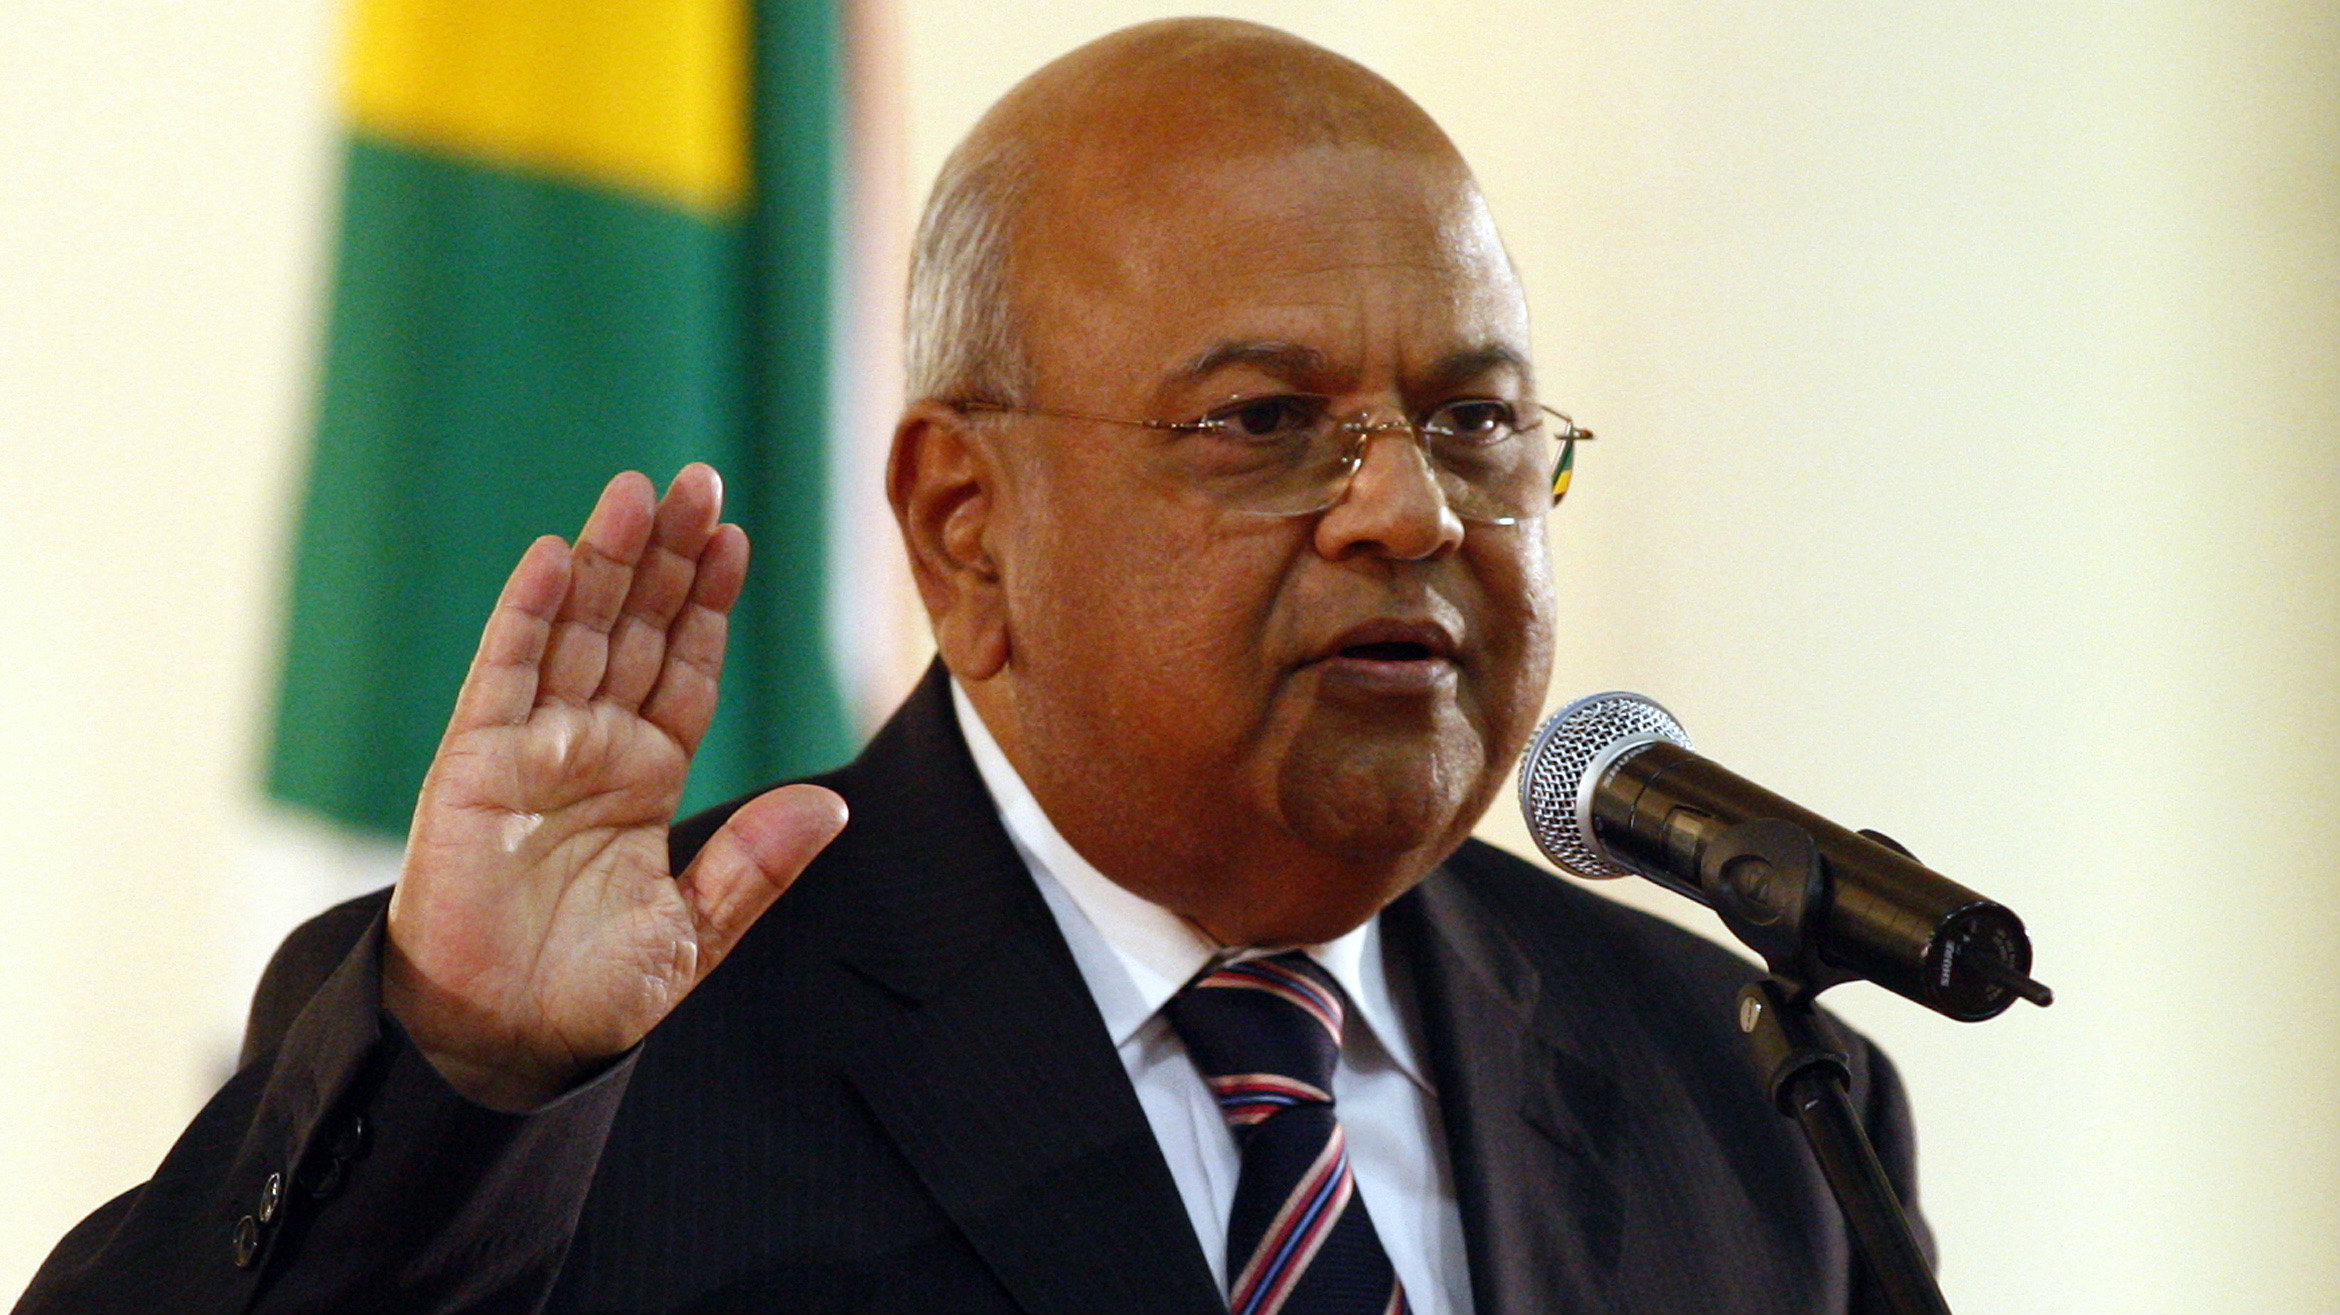 Former tax authority chief Pravin Gordhan is sworn in as finance minister replacing Trevor Manuel at the presidential guest house in Pretoria May 11, 2009. South African President Jacob Zuma's cabinet was sworn in on Monday after he had promised to help millions of poor people and comfort foreign investors who want him to keep market-friendly policies in place.